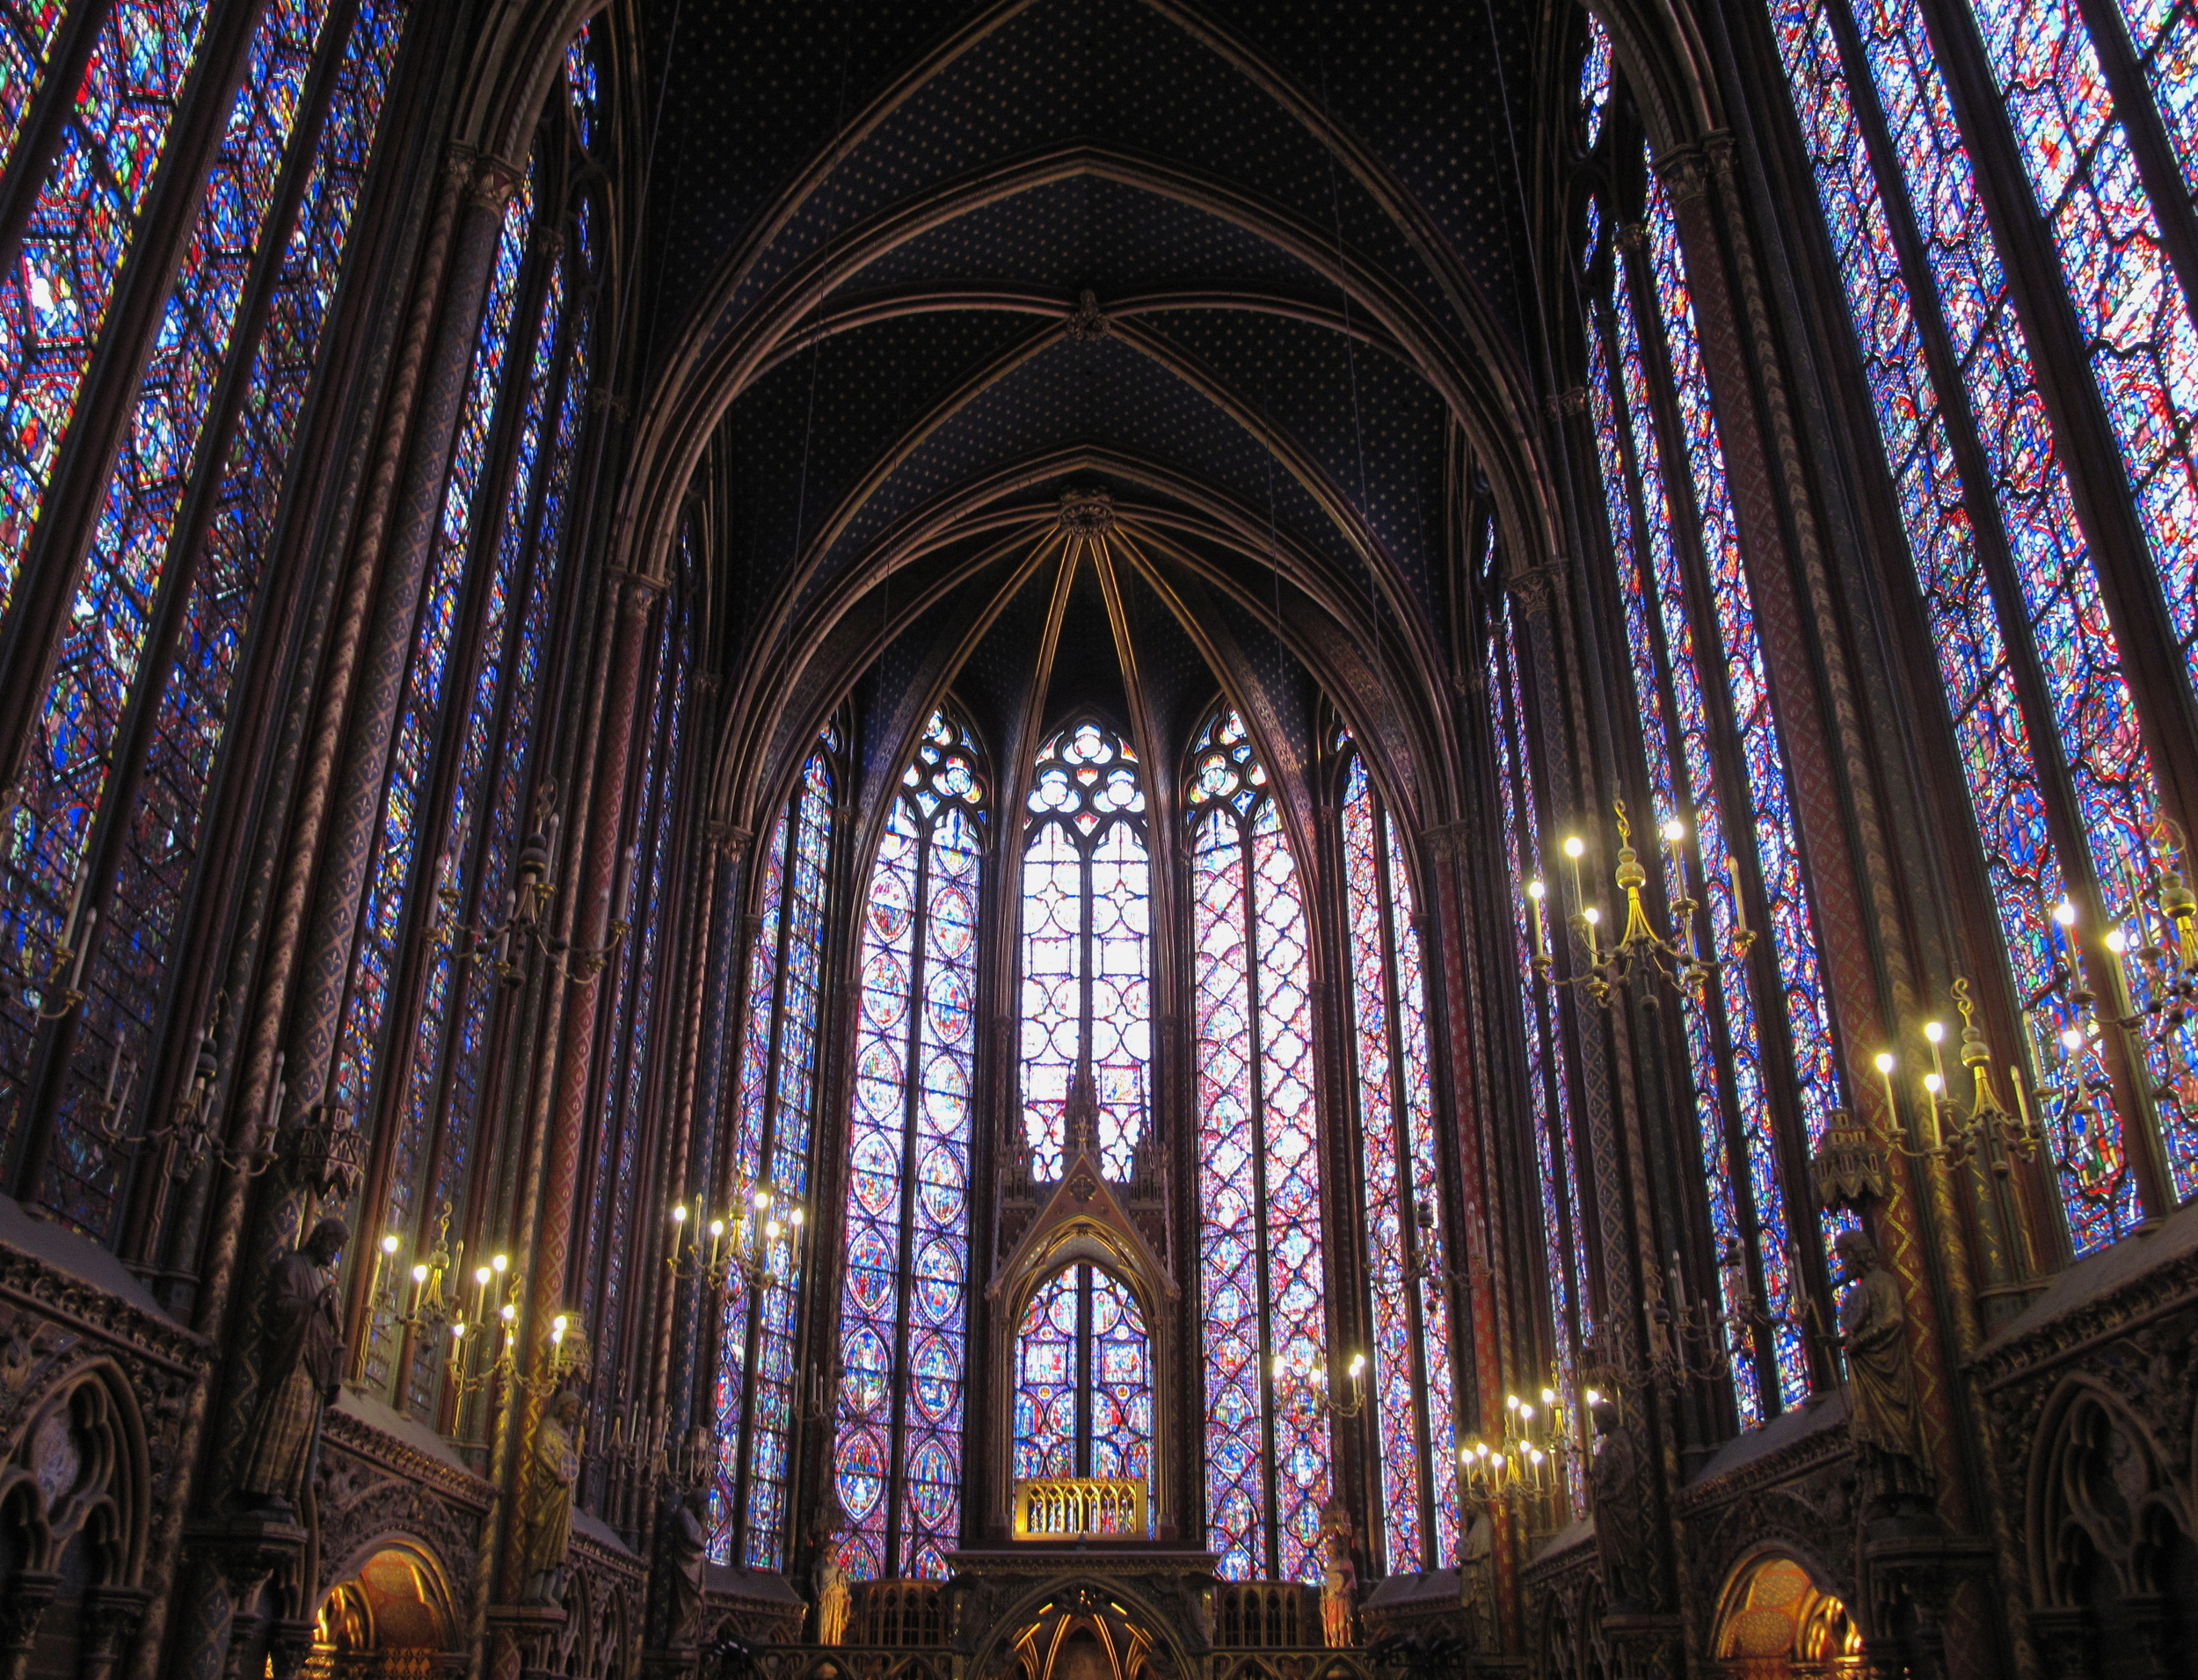 The inside of Sainte Chapelle, the stained glass windows